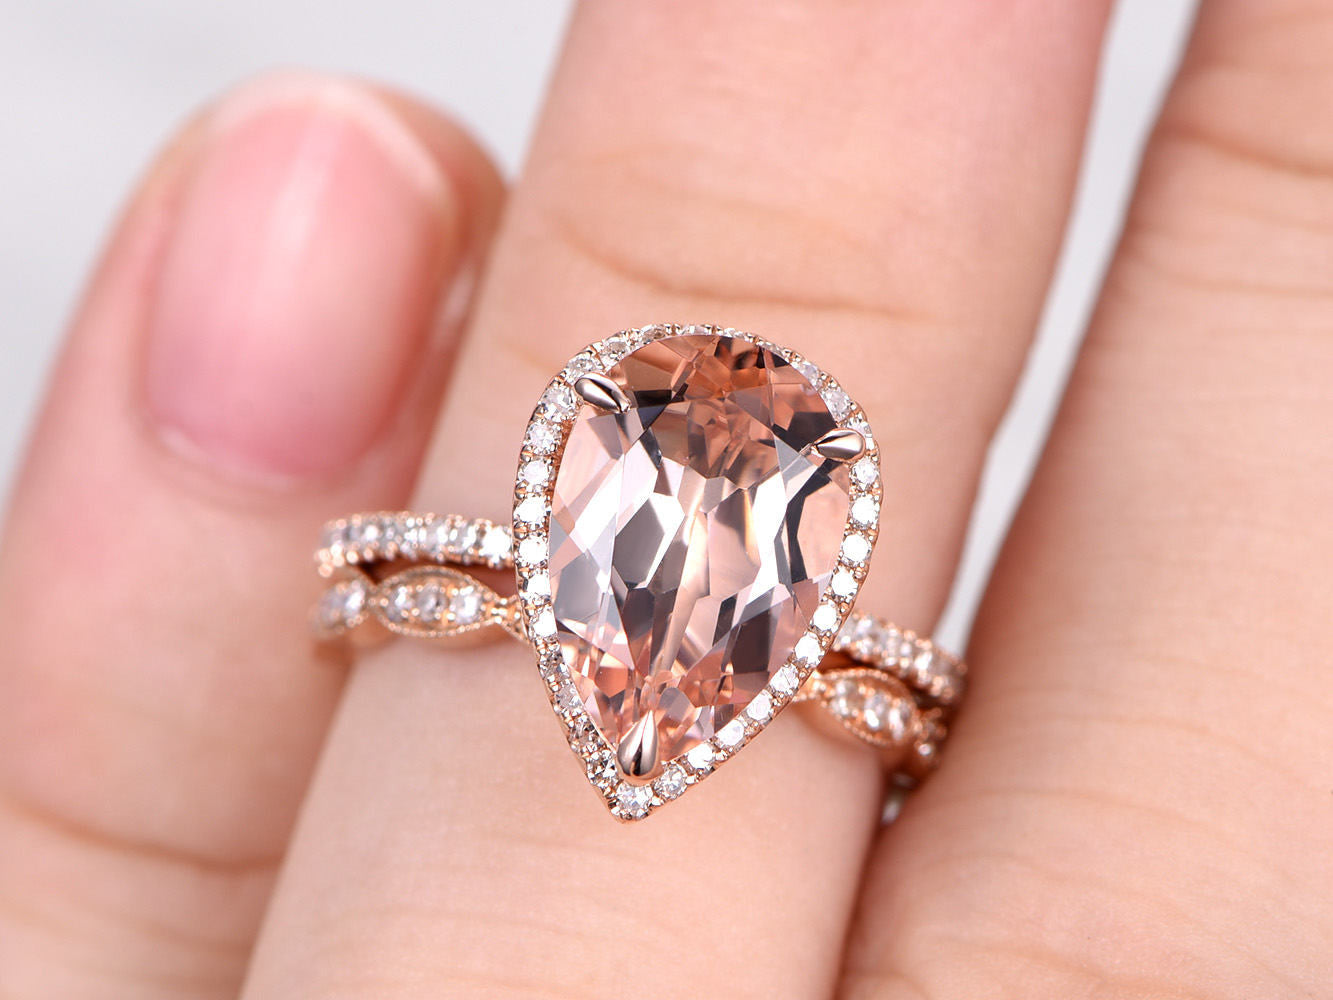 2pcs Bridal Ring Set,Morganite Engagement ring Rose gold,Diamond wedding band,14k,8x12mm Pear Cut,Promise Ring,Art Deco,Full eternity ring